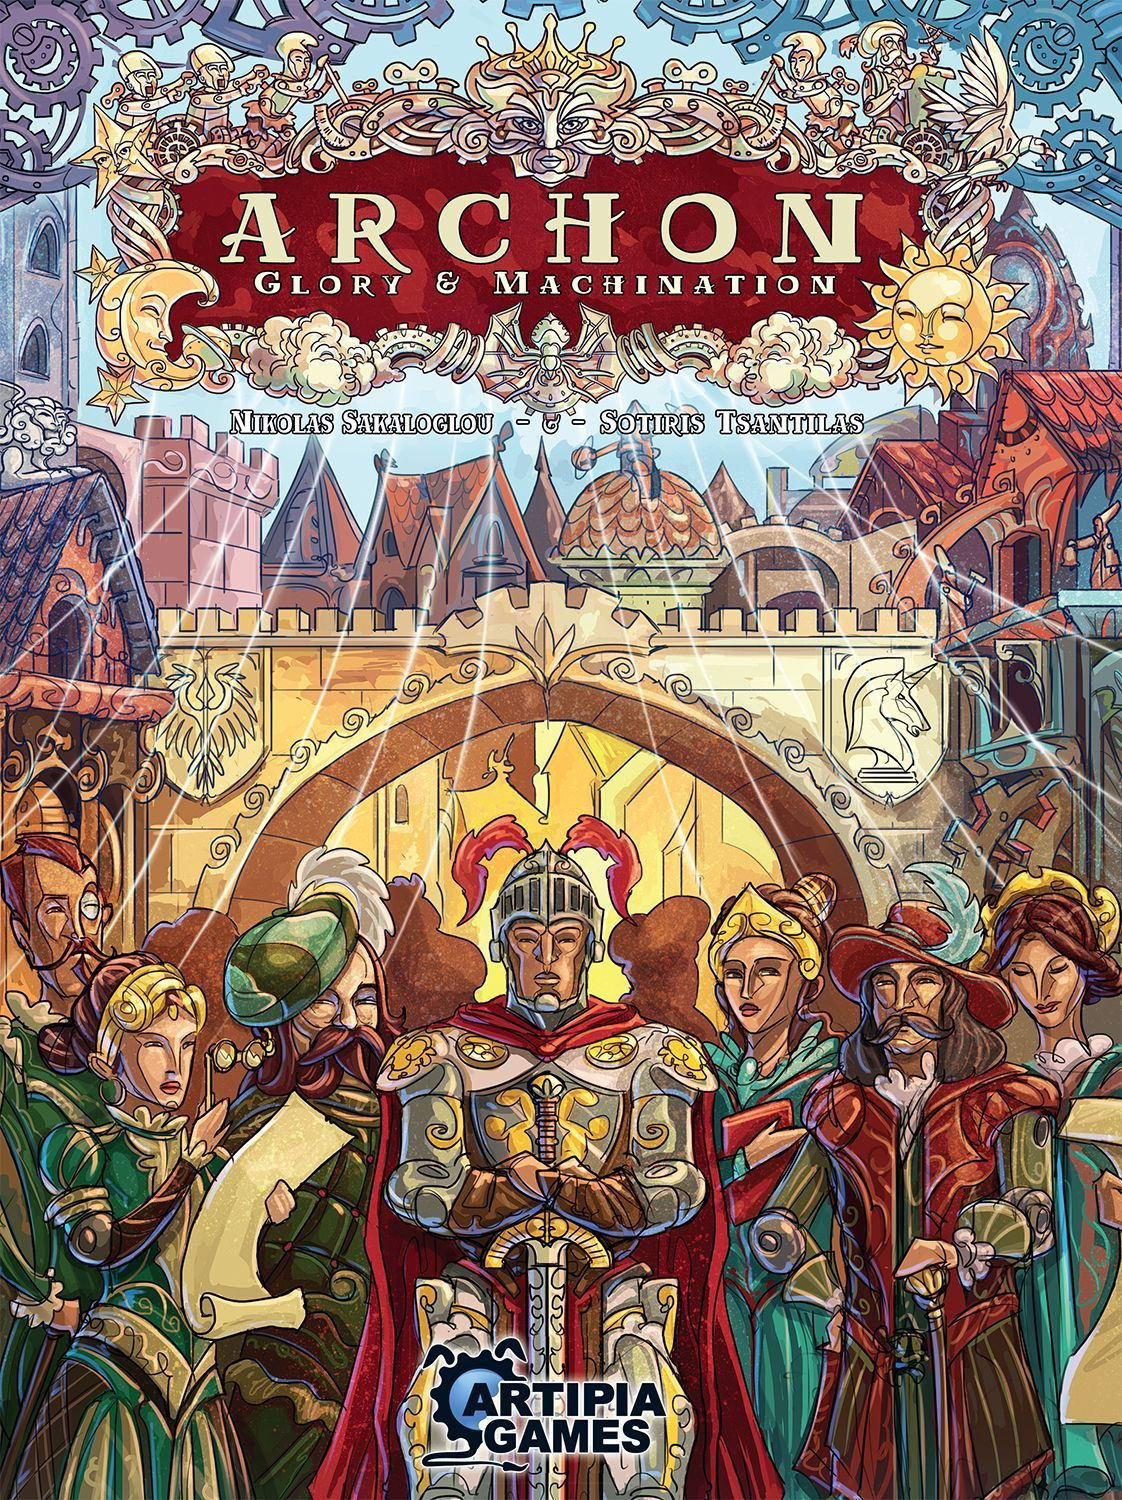 Main image for Archon: Glory & Machination board game